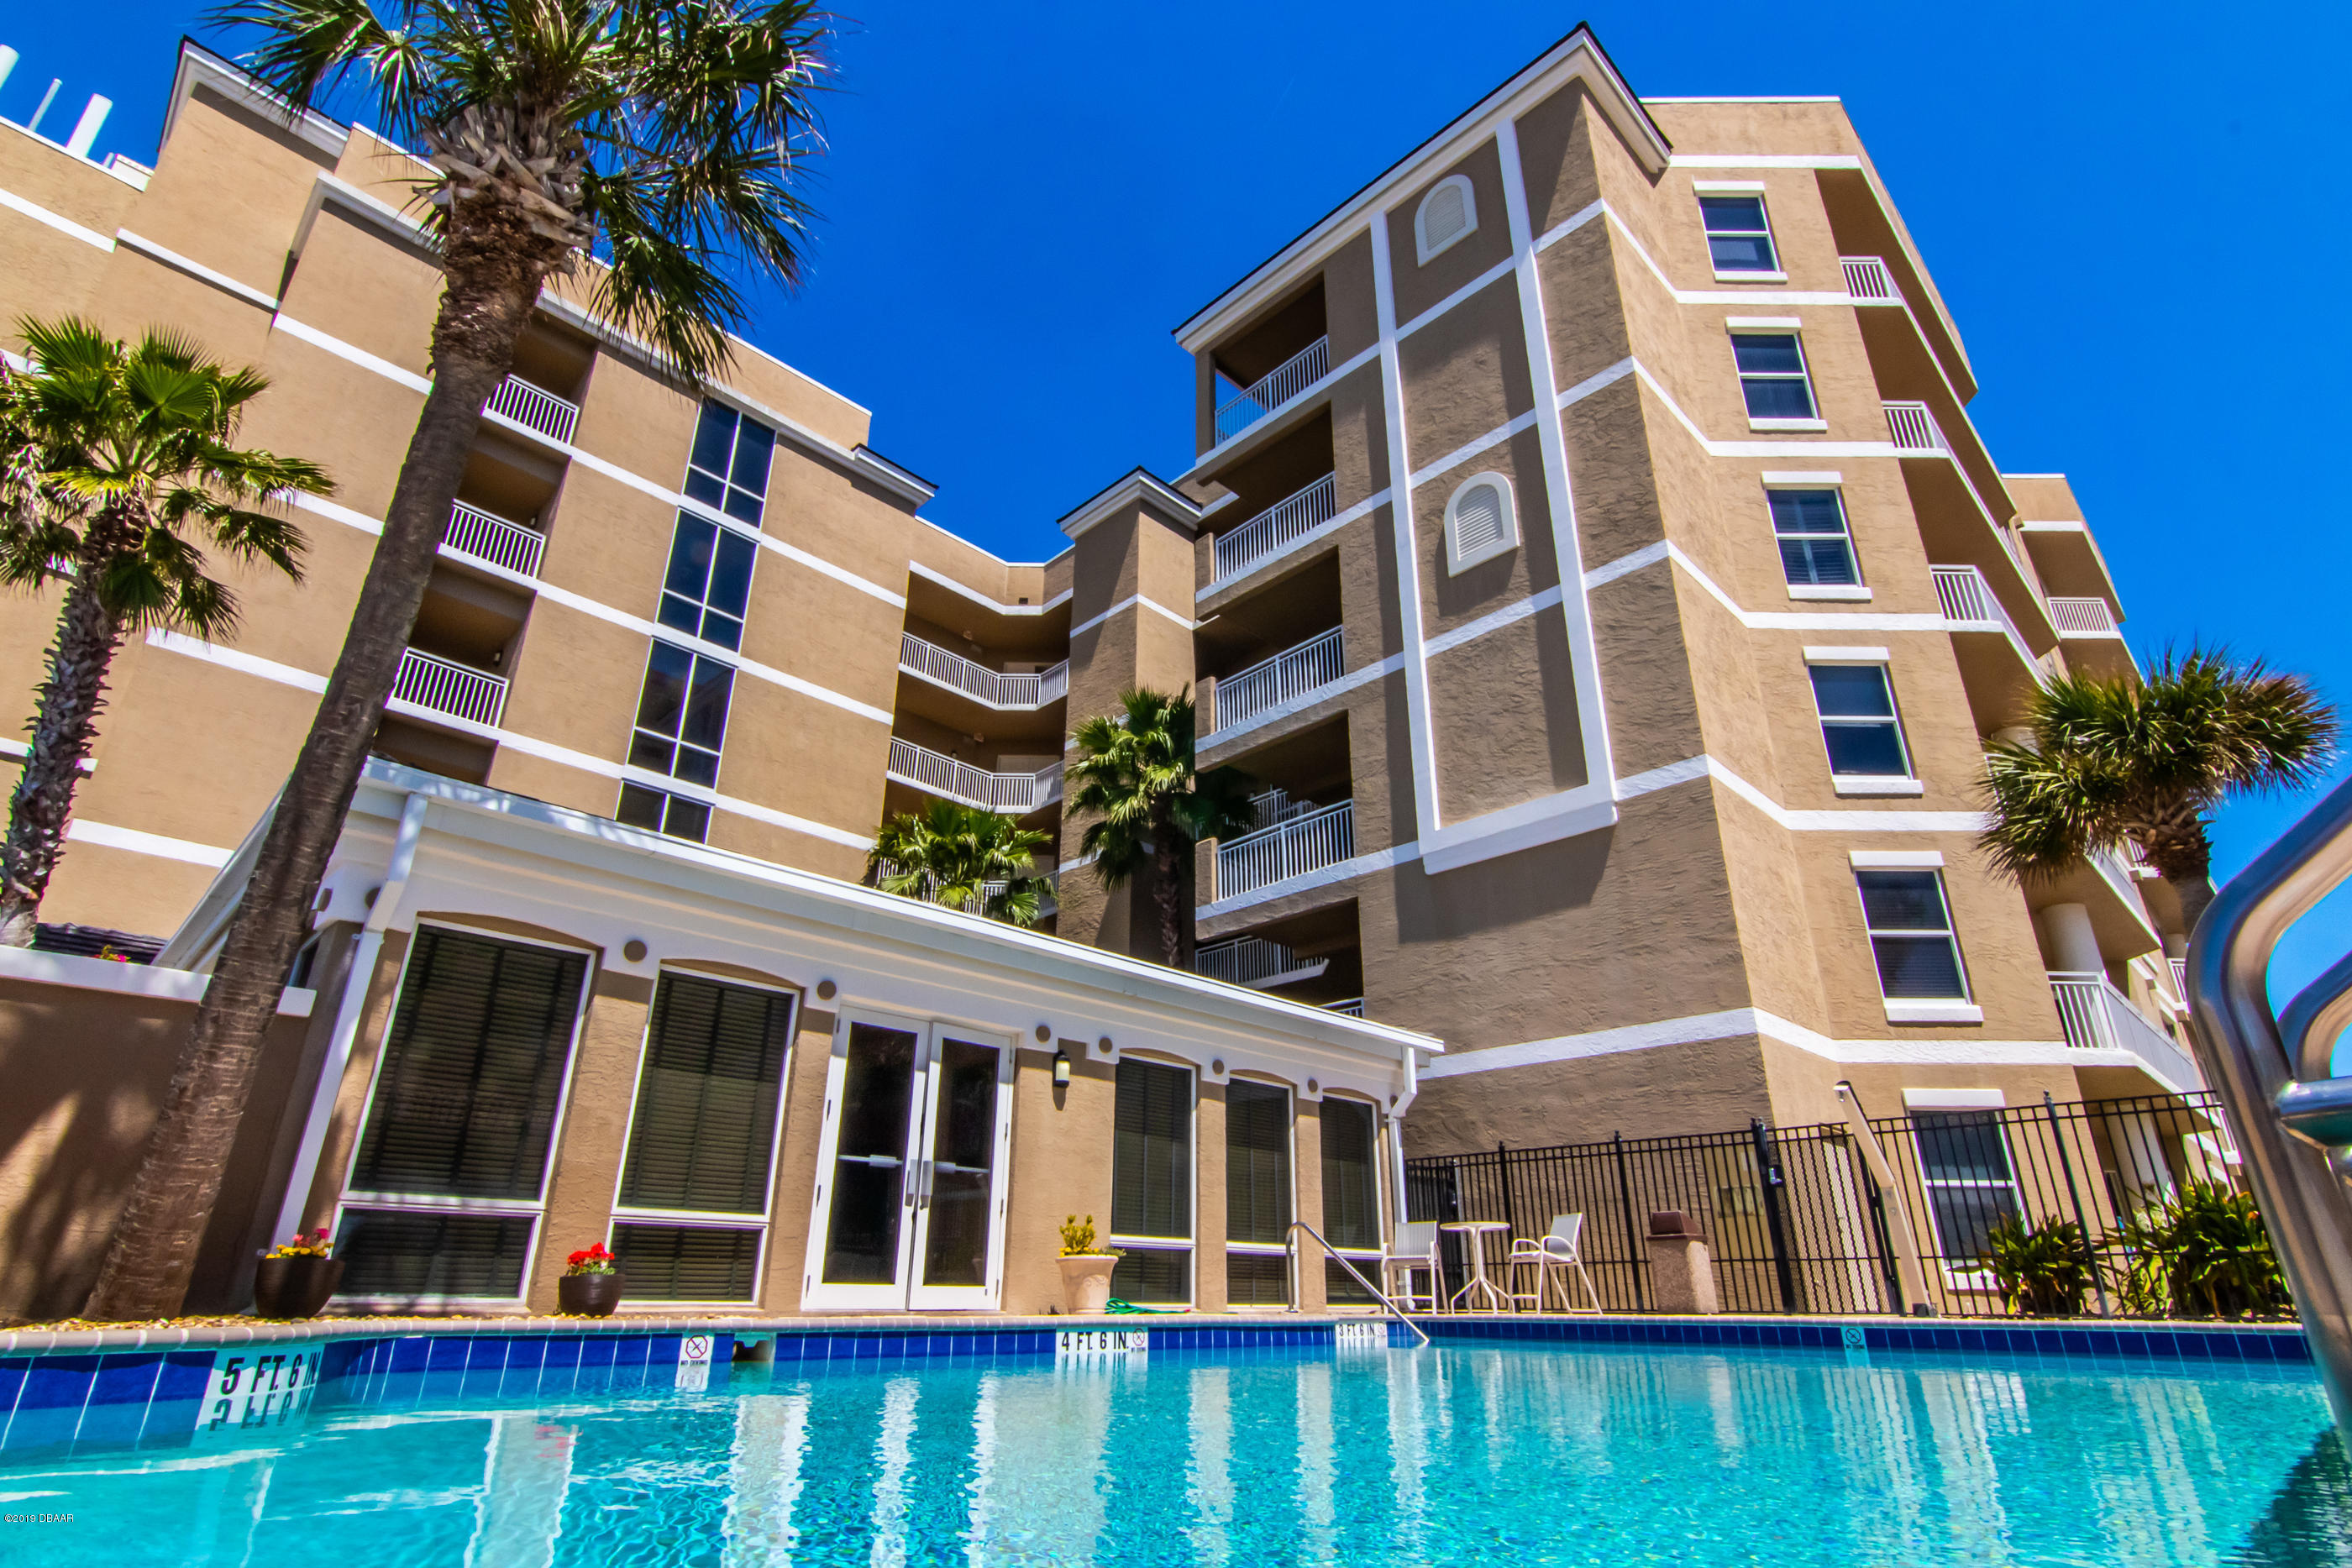 Photo of 2855 S Atlantic Avenue #104, Daytona Beach Shores, FL 32118